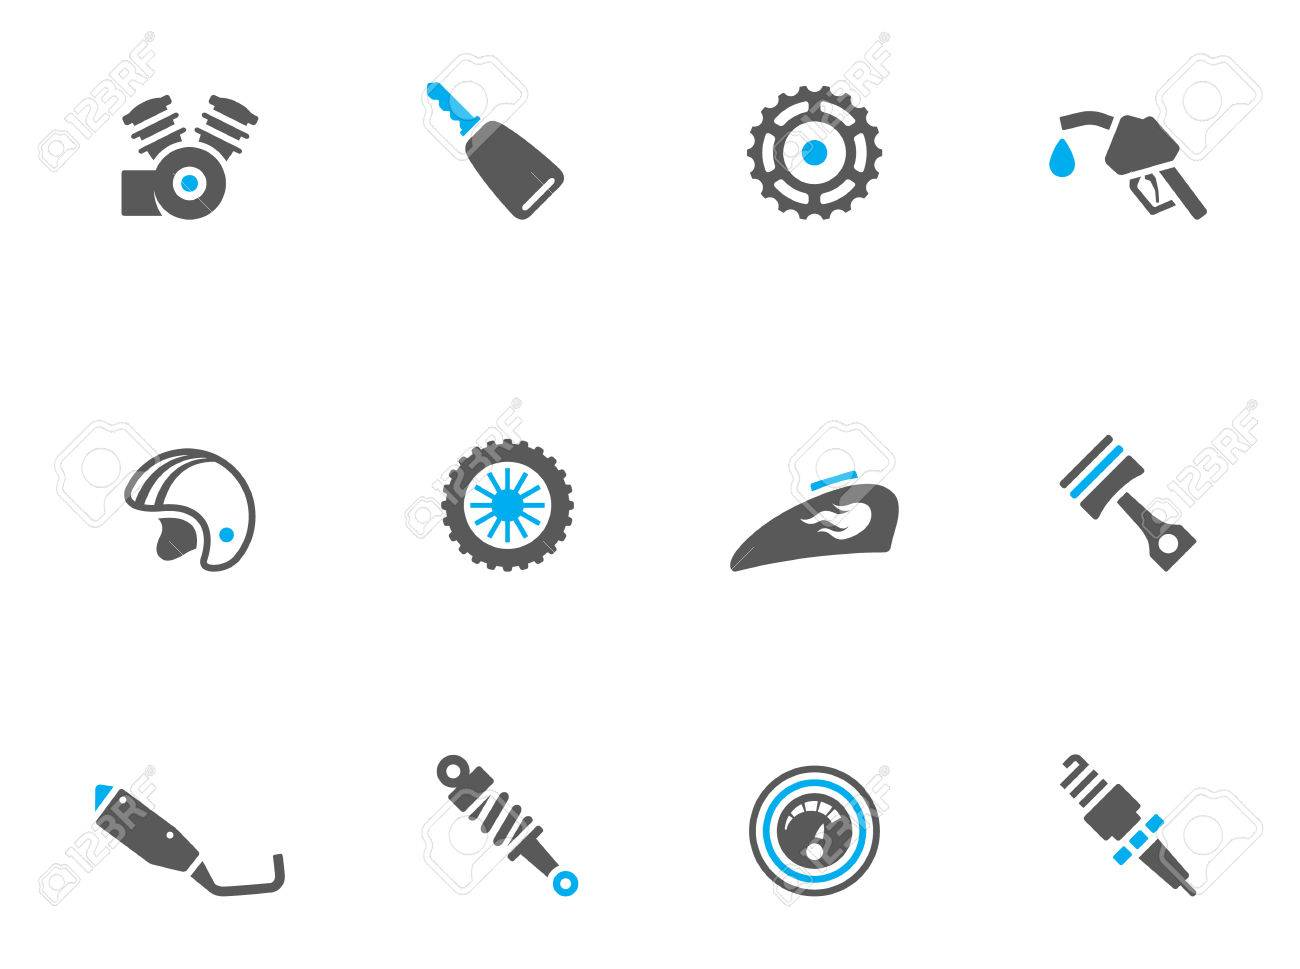 Motorcycle parts icons in duo tone colors. EPS 10. Stock Vector - 23775130